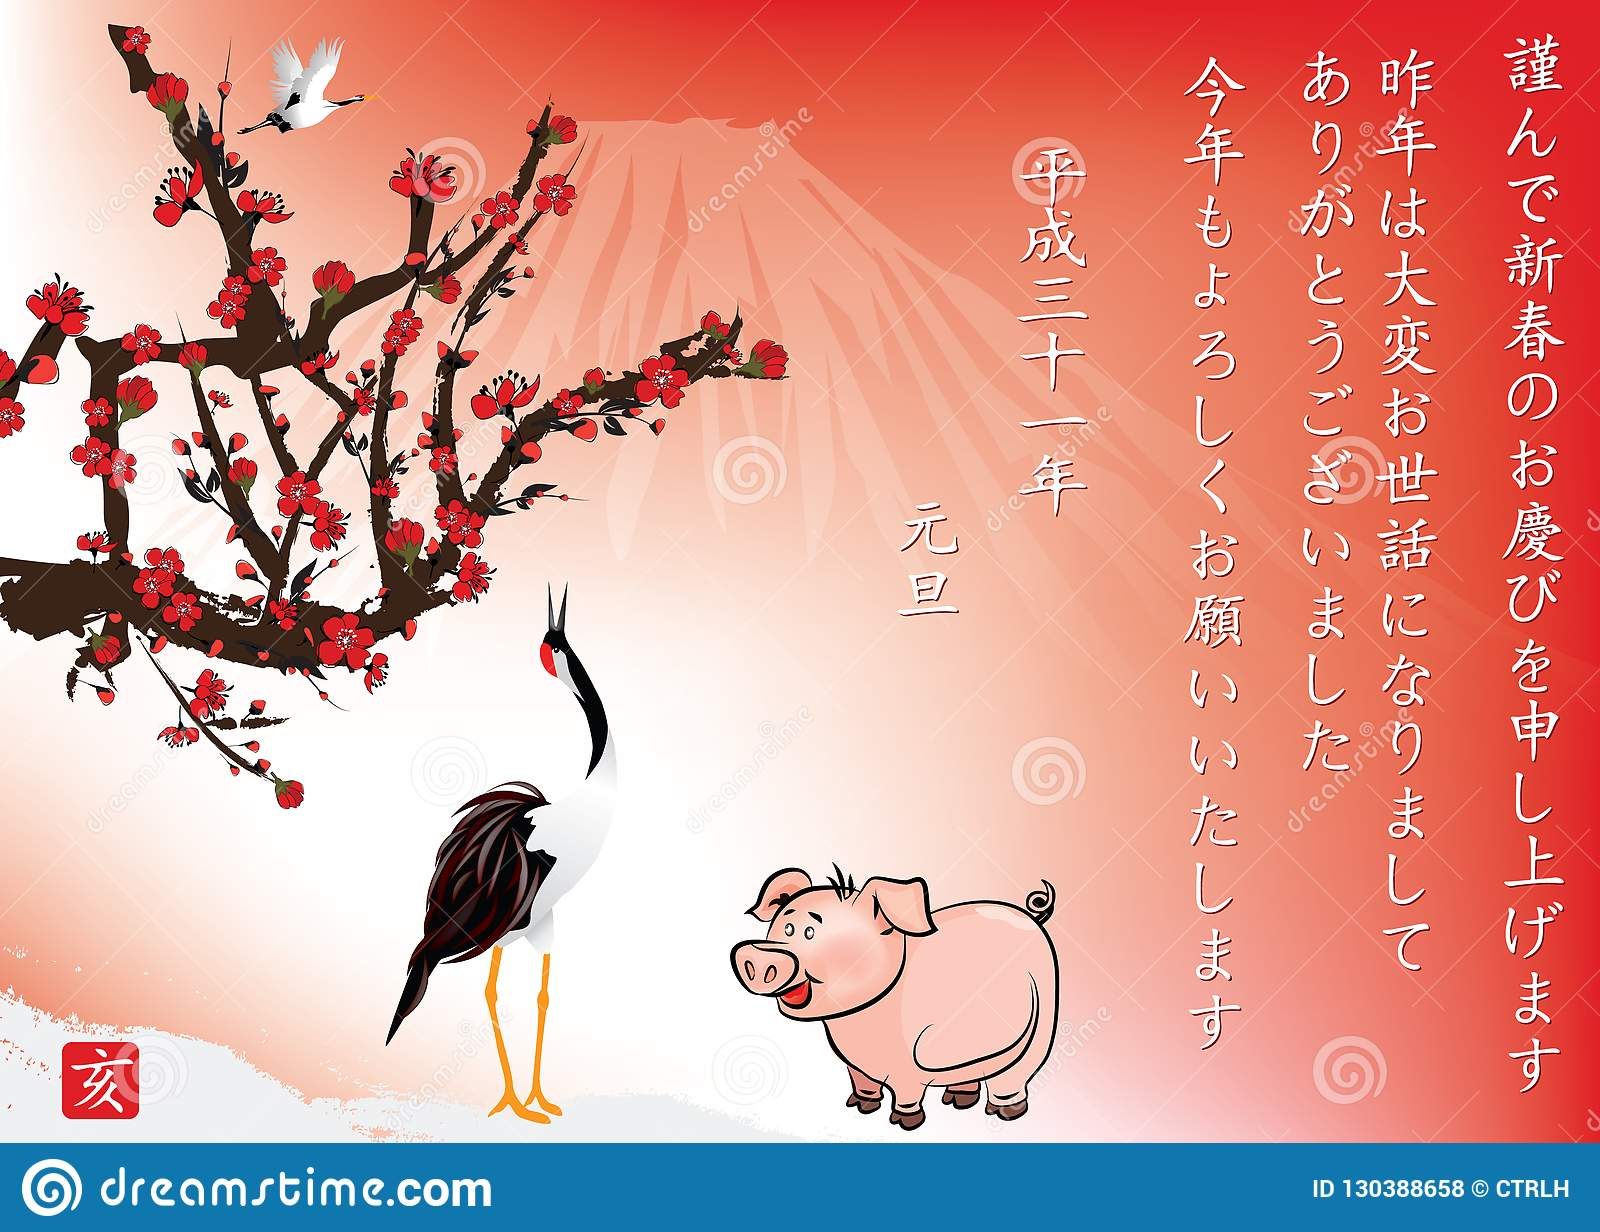 japanese new year of the pig 2019 greeting card with red background  stock illustration